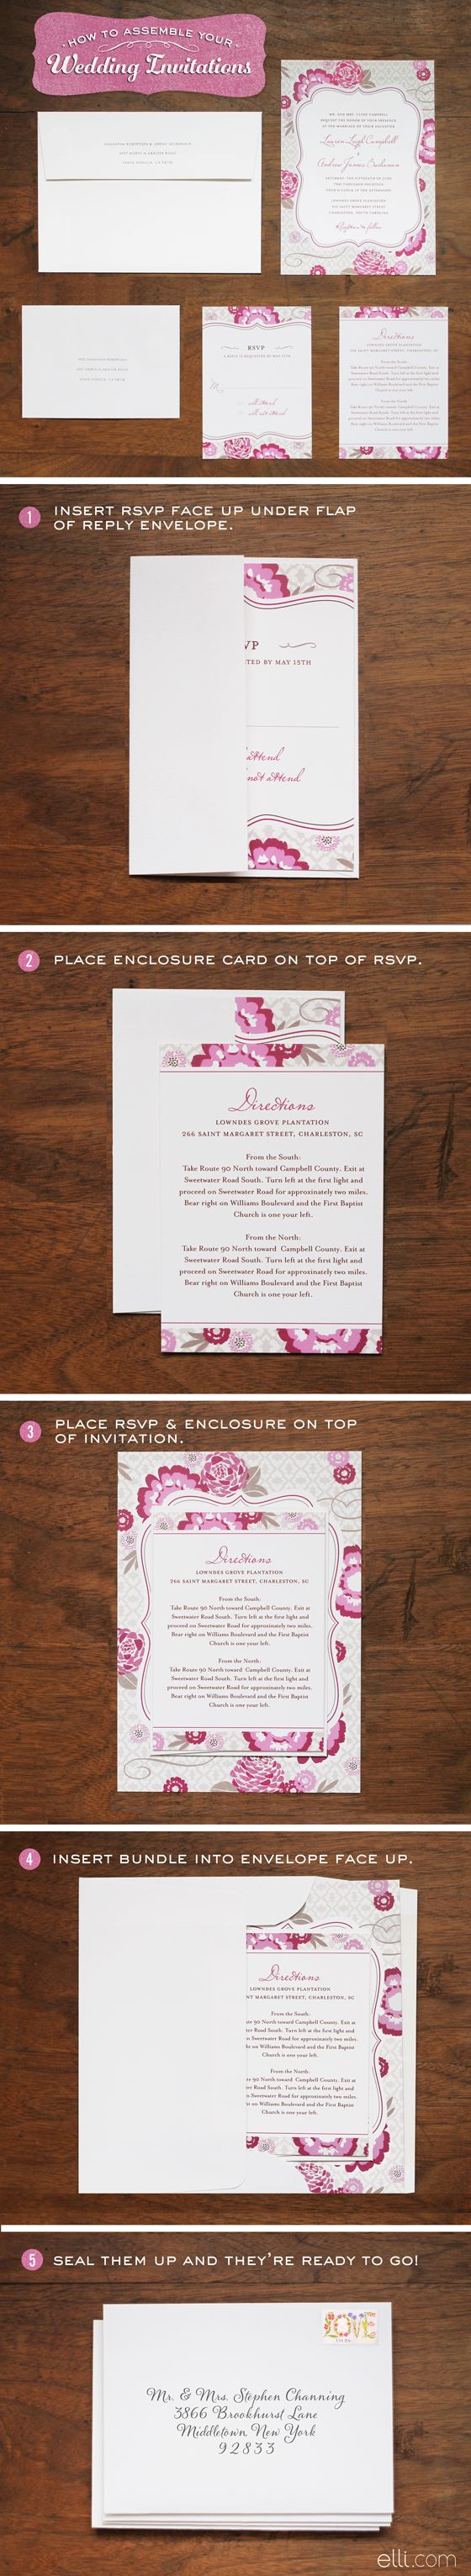 222 best The Elli Blog images on Pinterest | Bridal invitations ...